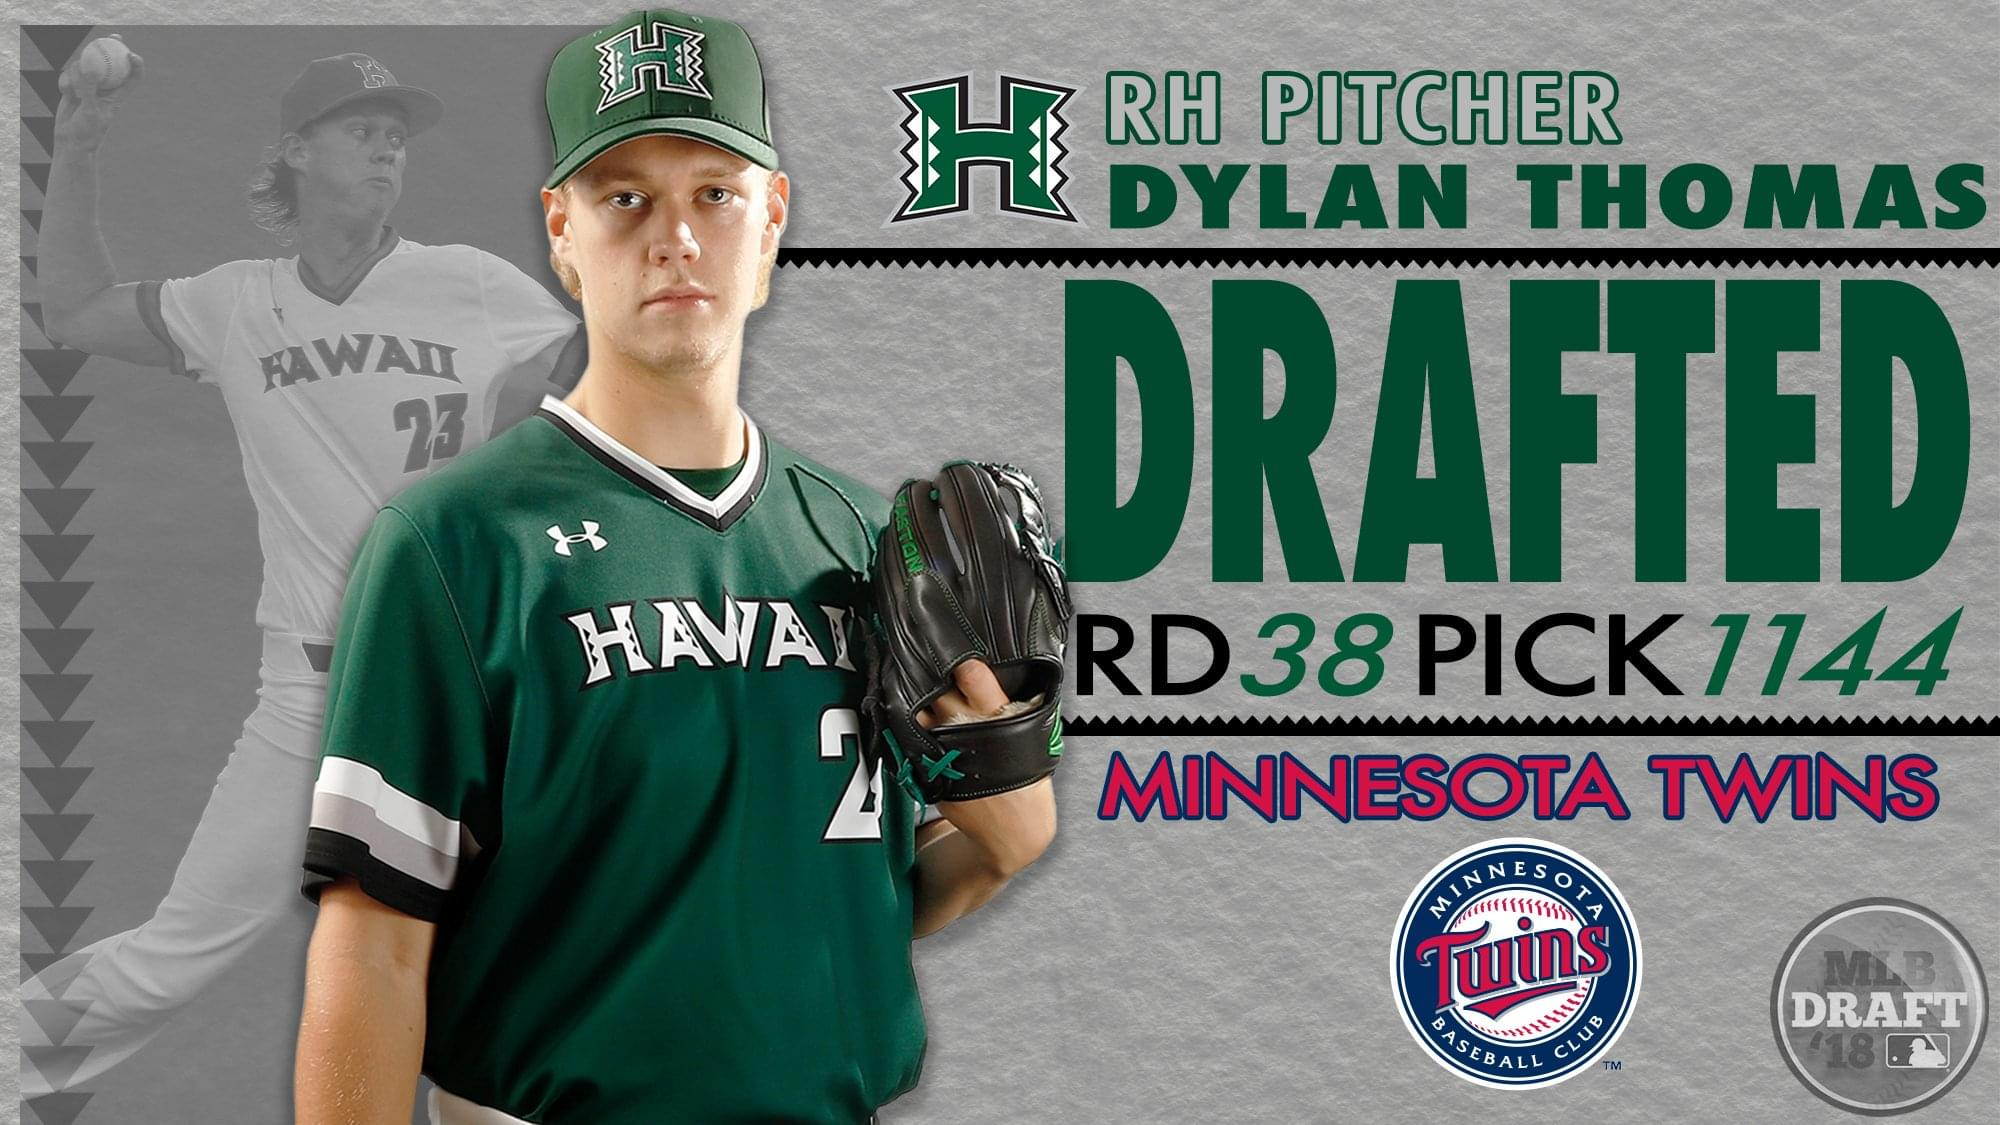 Dylan Thomas Drafted